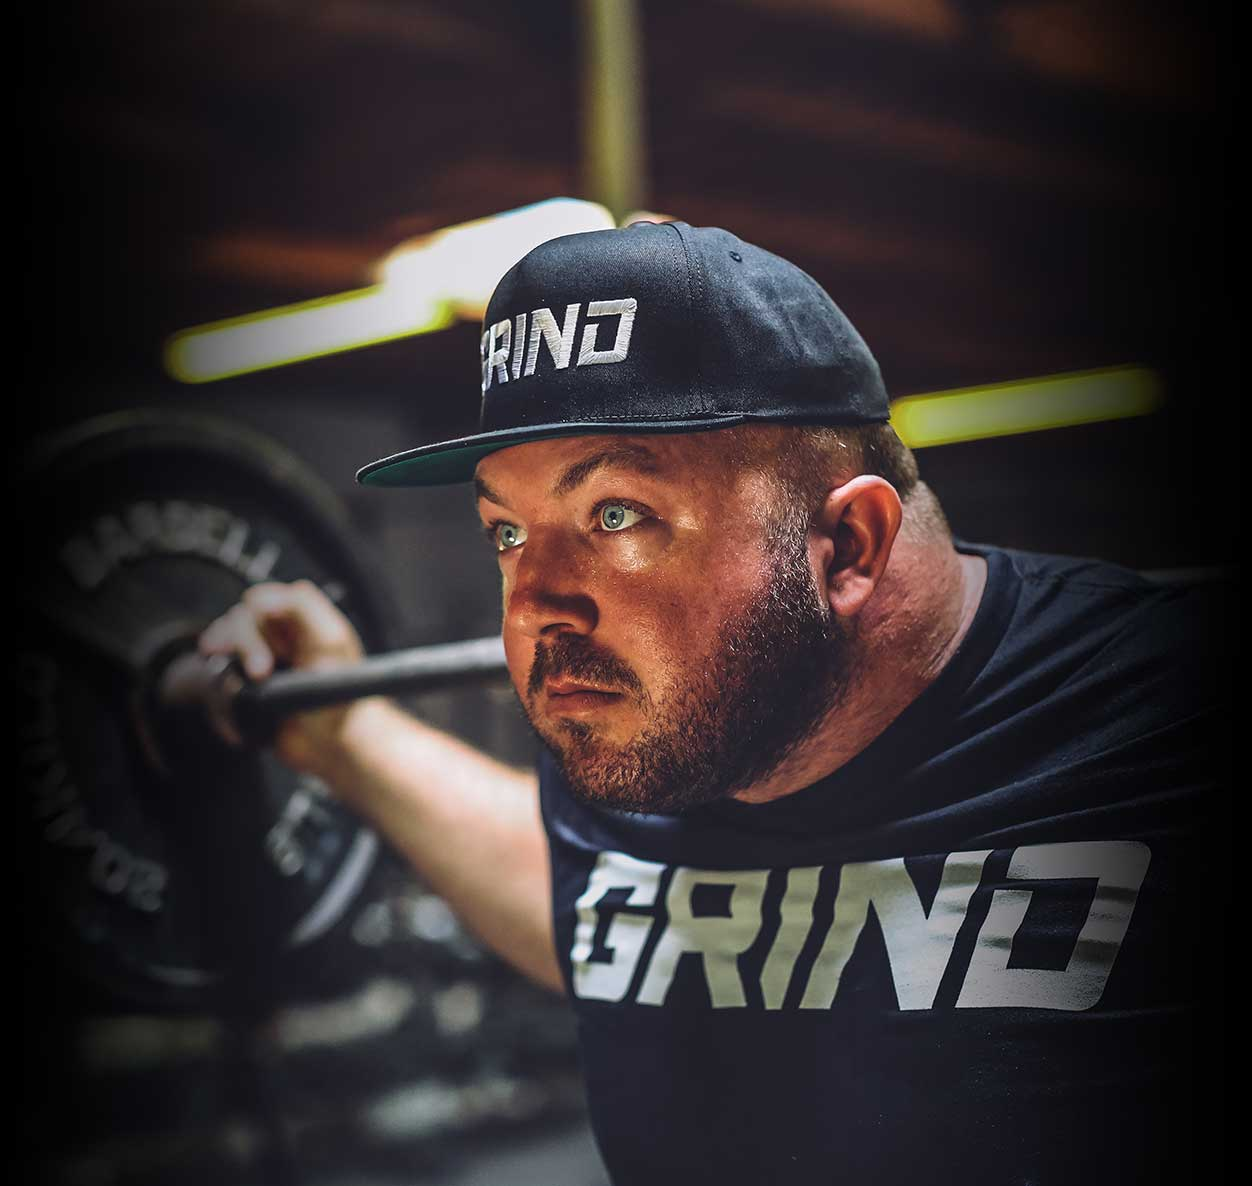 Weightlifter Athlete Chad Wesley Smith